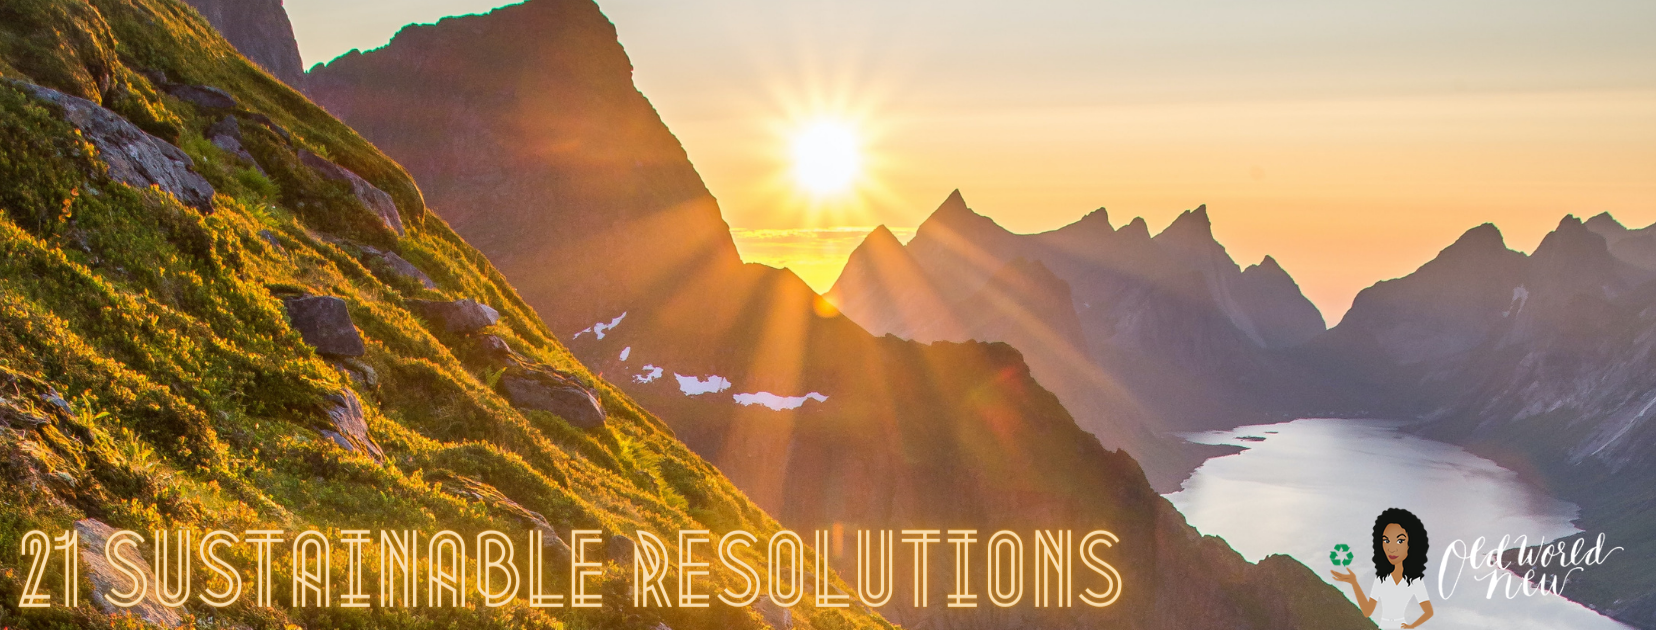 21 sustainable resolutions 2021 - Old World New